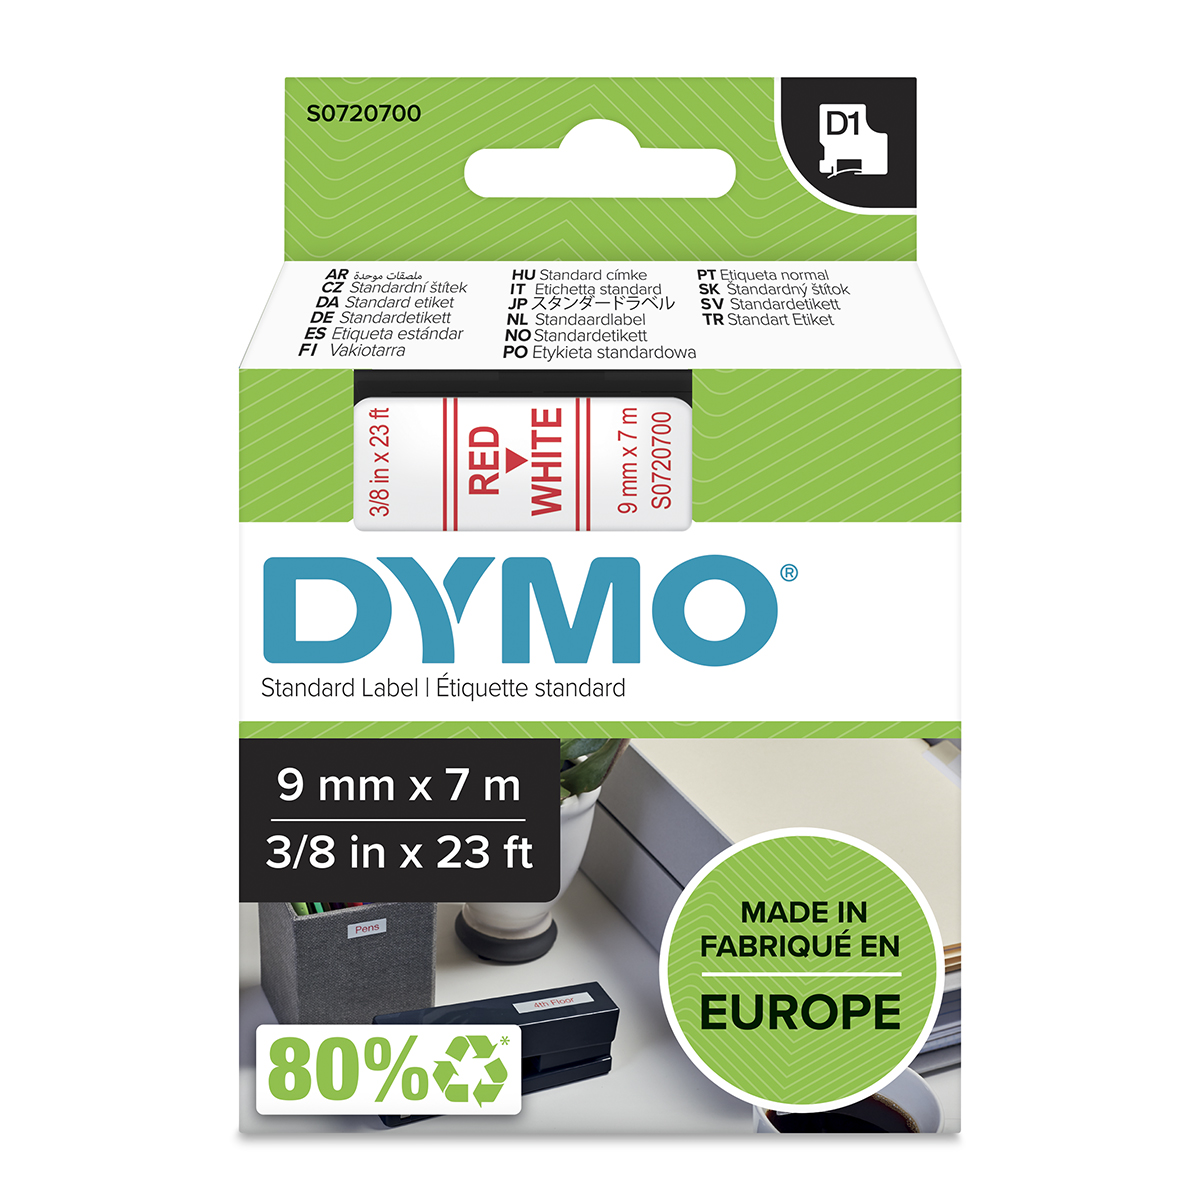 Dymo 40915 D1 9mm x 7m Red on White Tape